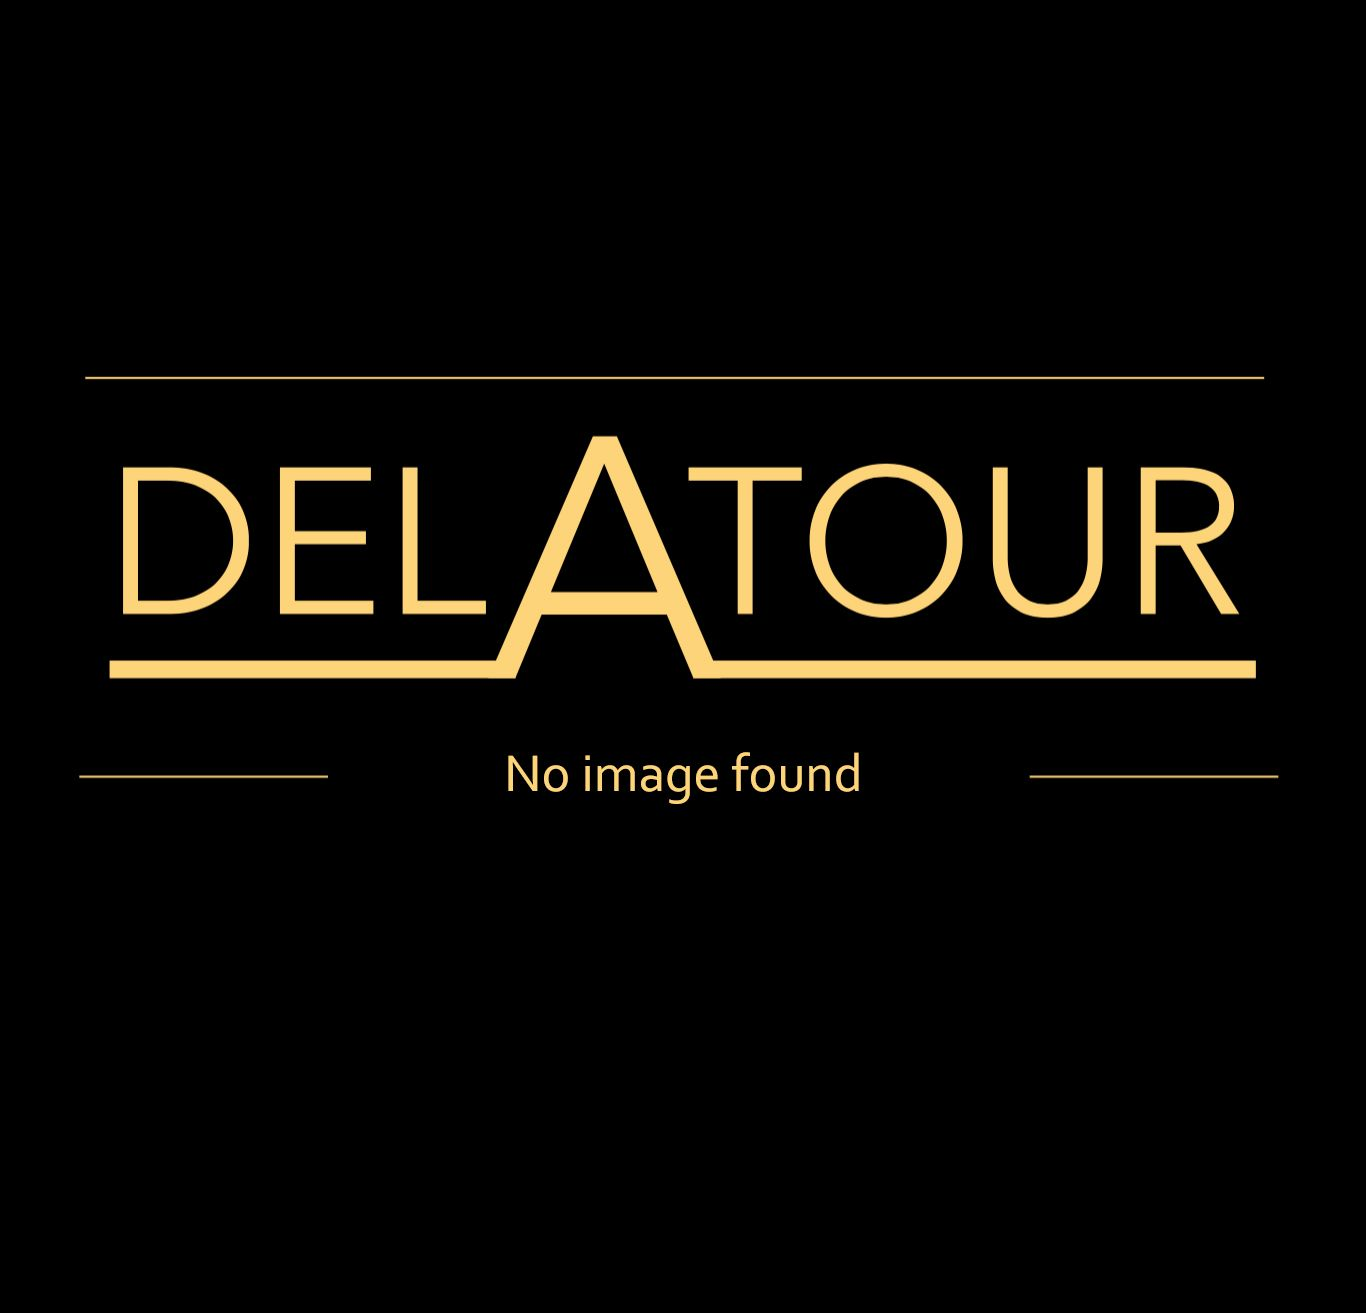 National Geographic St Marks Square Venice